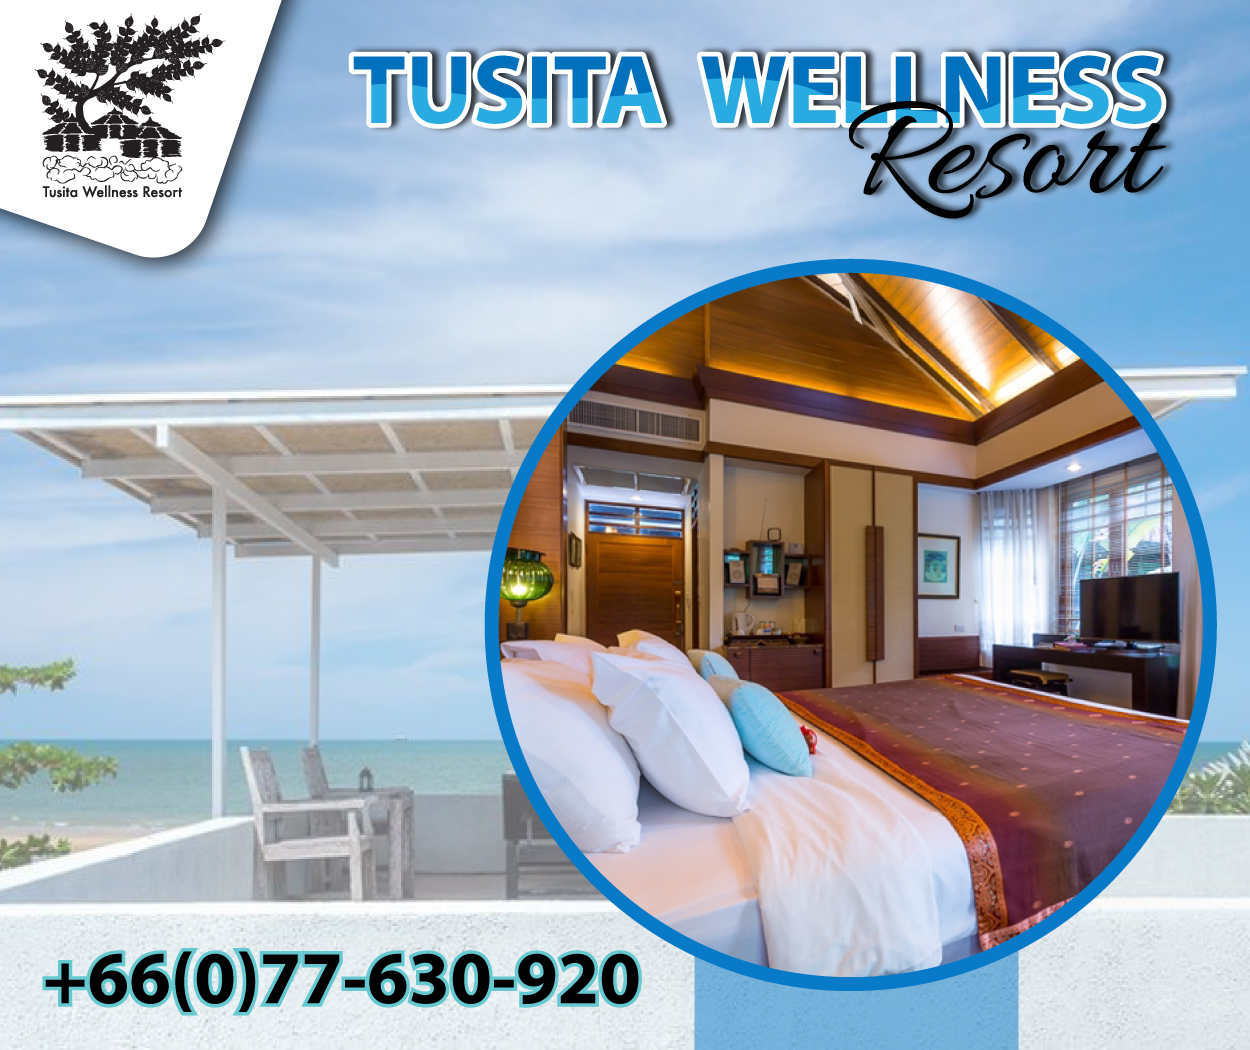 Tusita Wellness Resort Chumphon